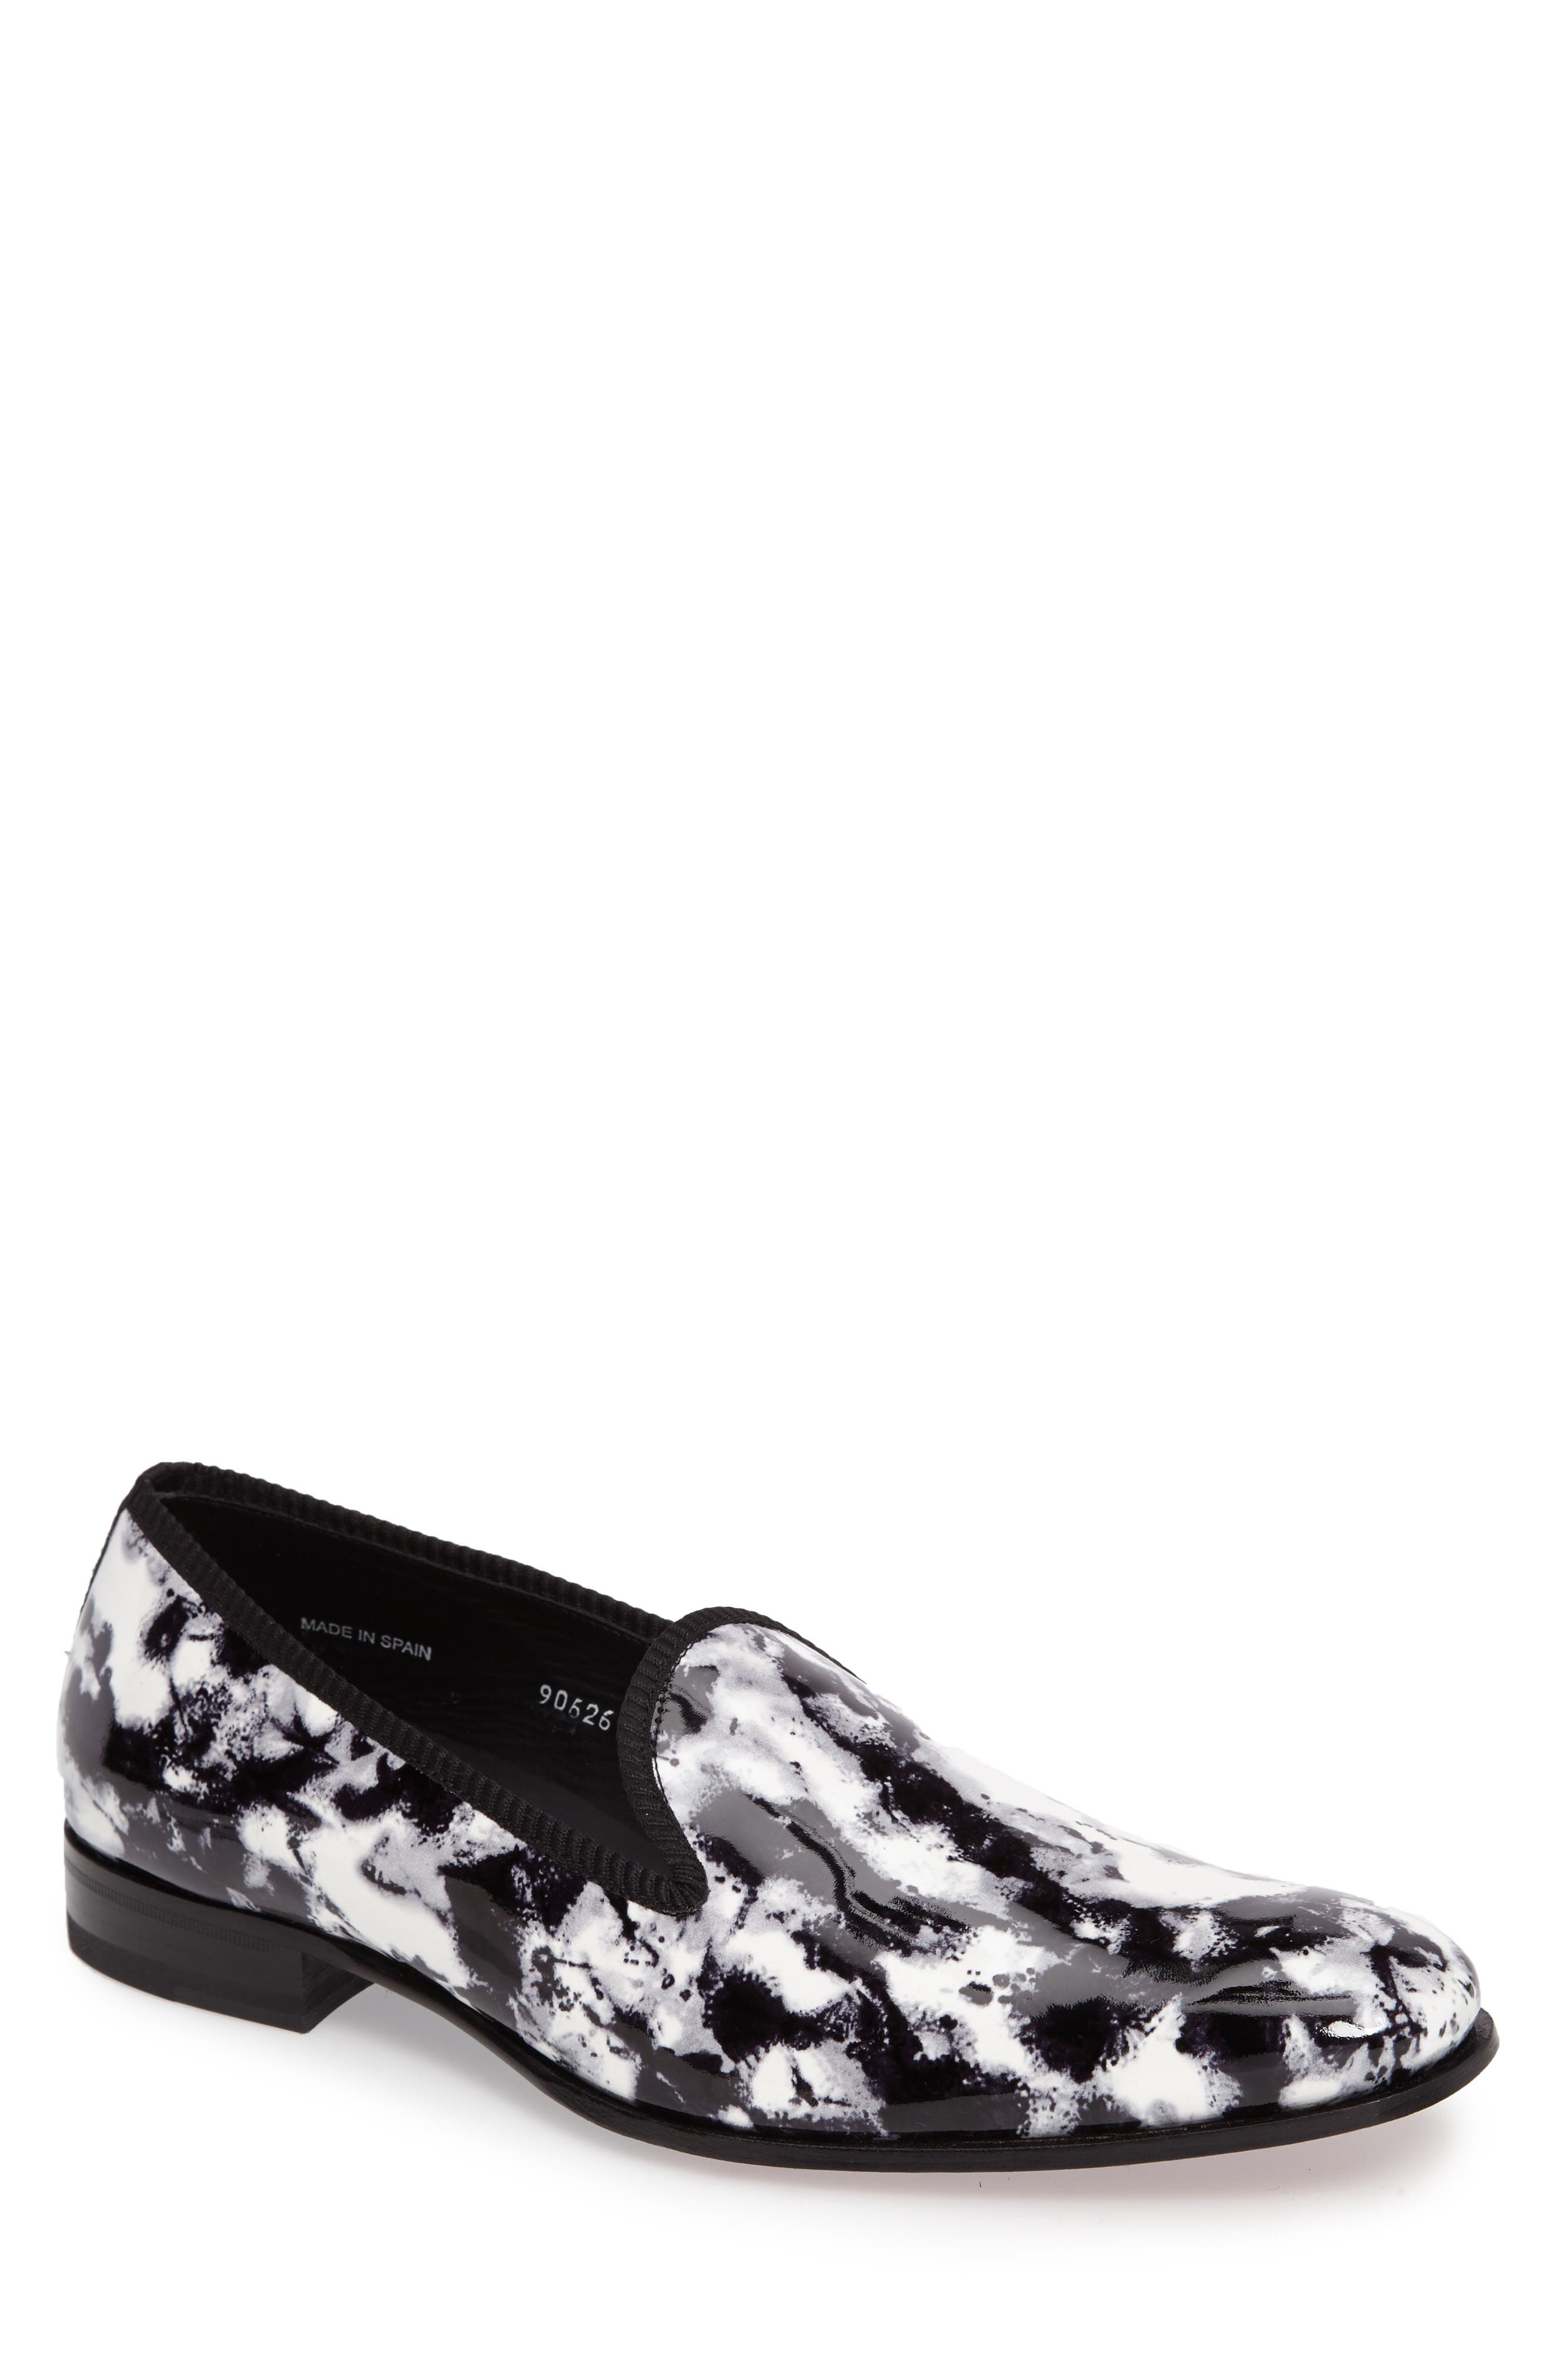 Mayr Patterned Venetian Loafer,                             Main thumbnail 1, color,                             001